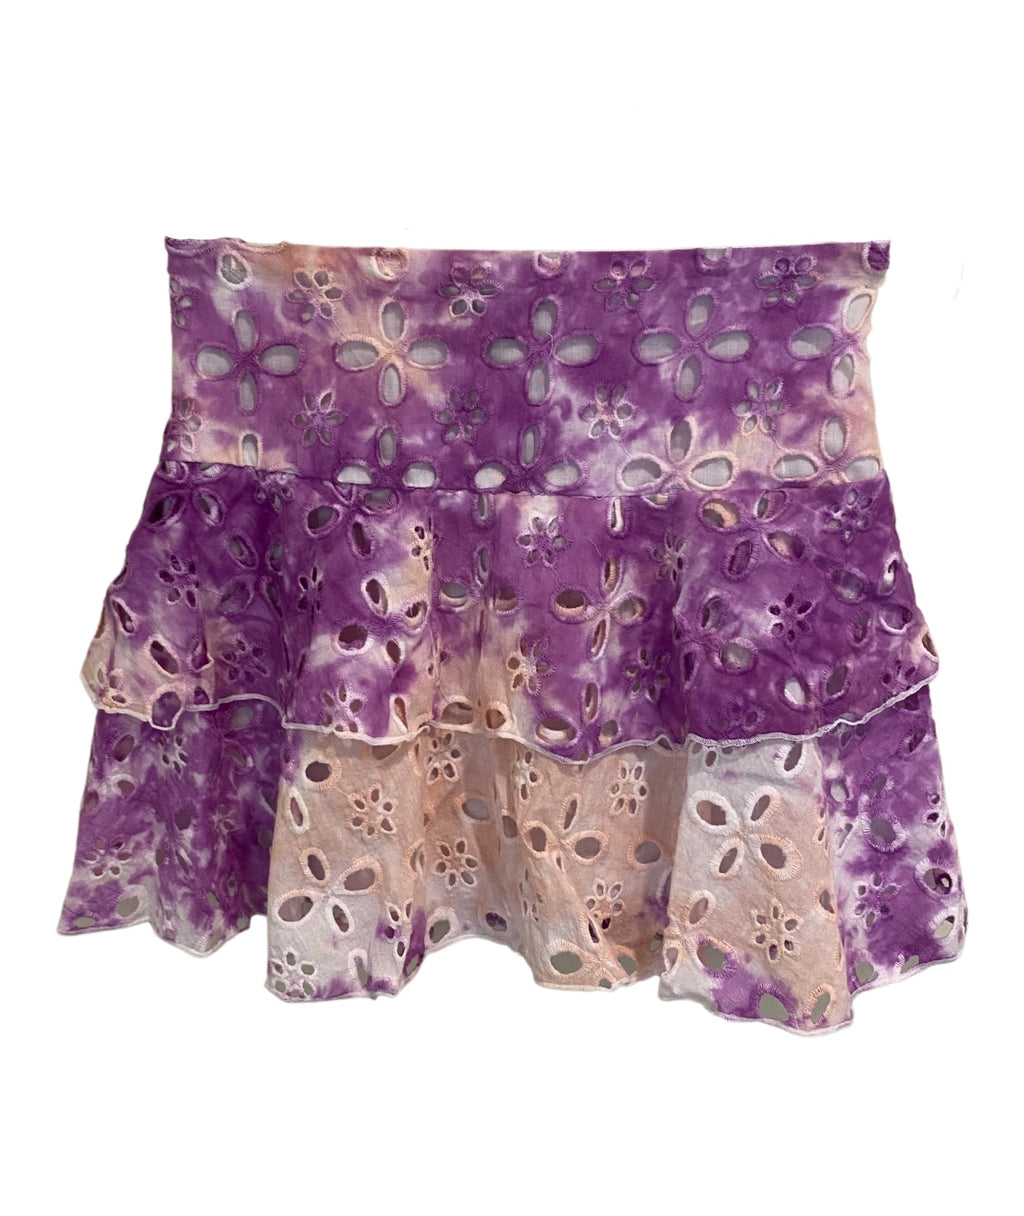 Flowers By Zoe Girls Tie Dye Tiered Skirt Purple/Pink